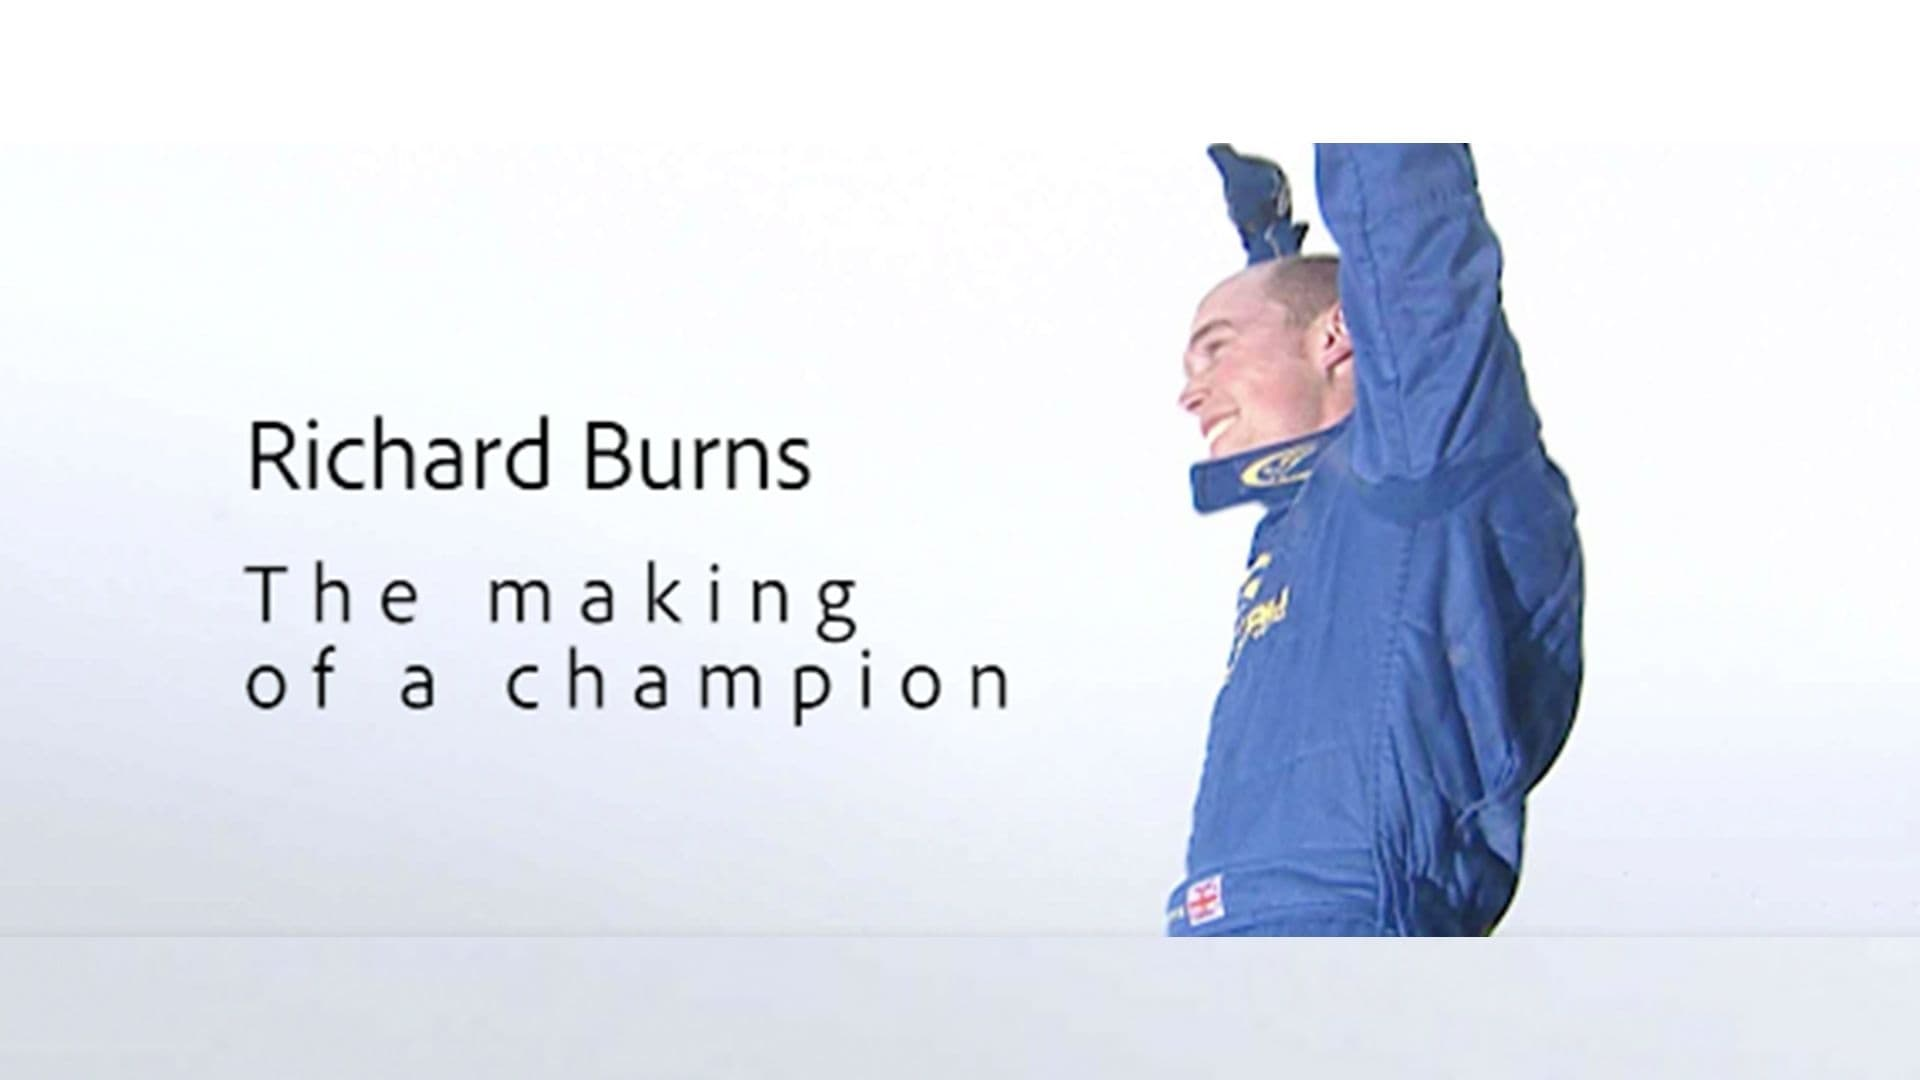 Richard Burns - The making of a champion